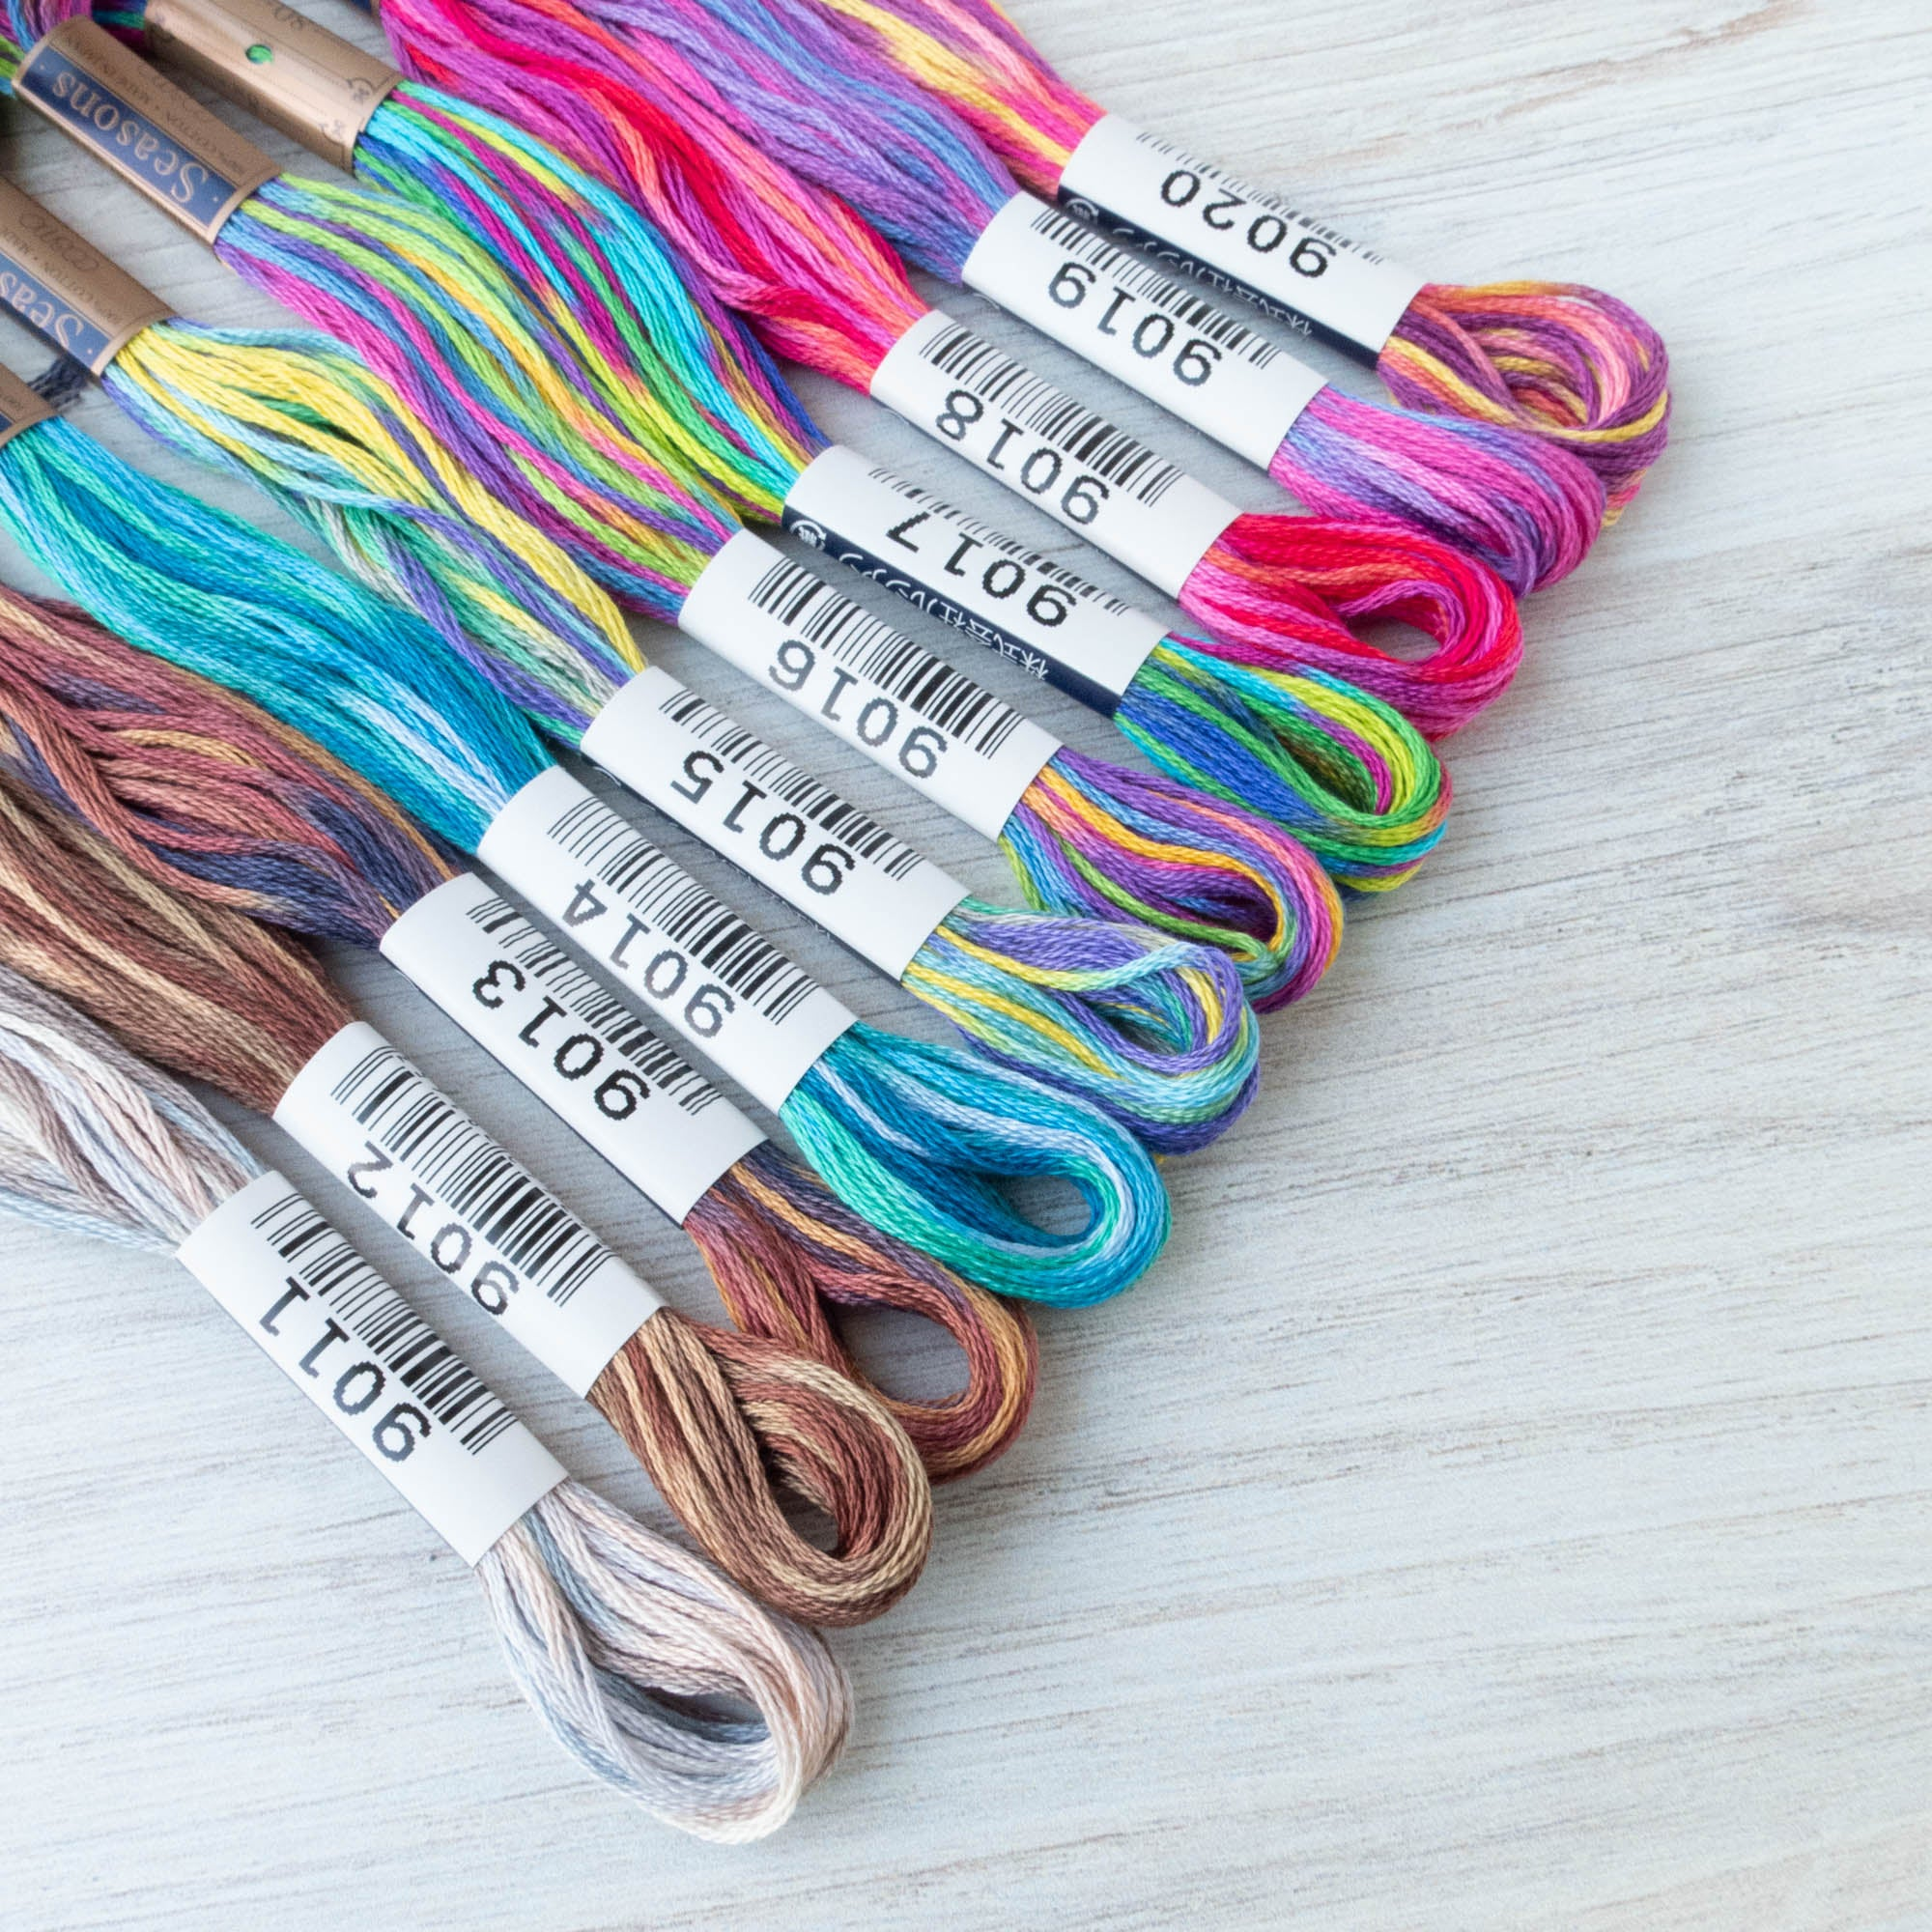 Cosmo Seasons Variegated Embroidery Floss Set - 9000 Series Collection II Floss - Snuggly Monkey